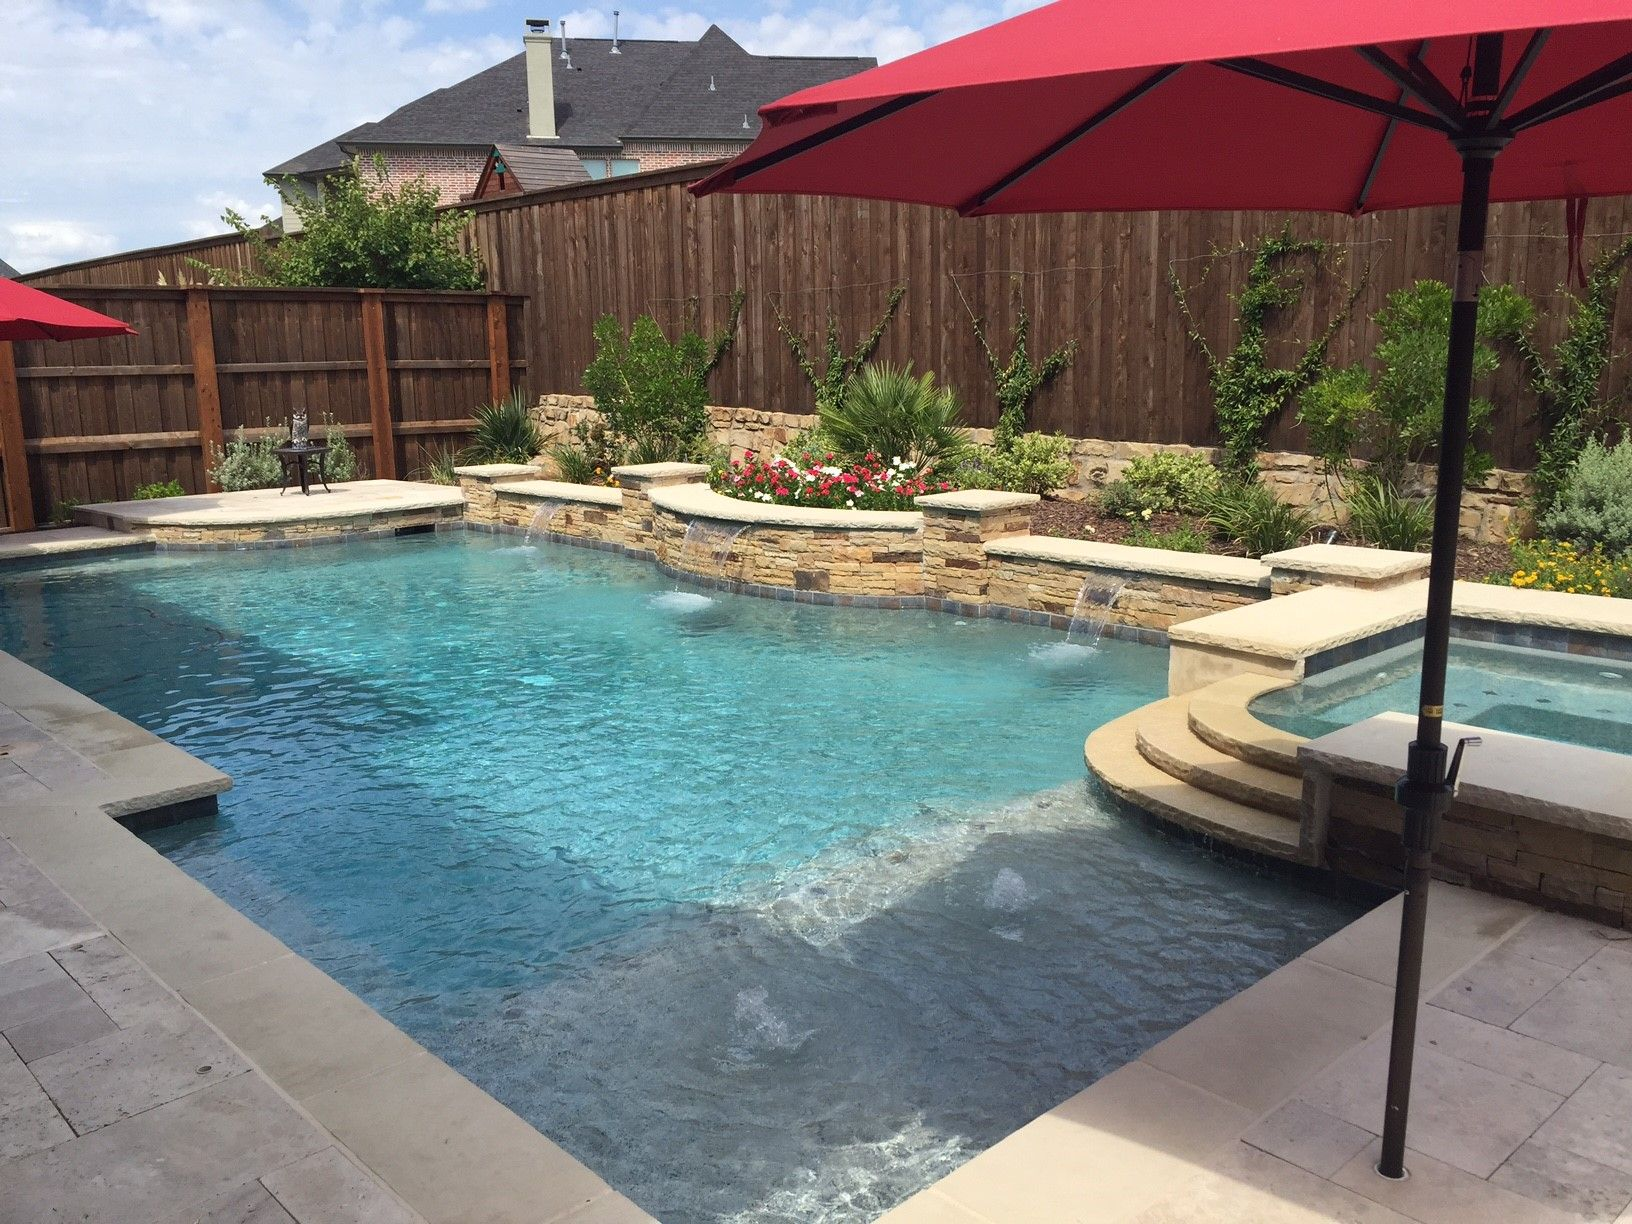 Dallas formal pools rockwall custom pool formal pool for Pool design ideas